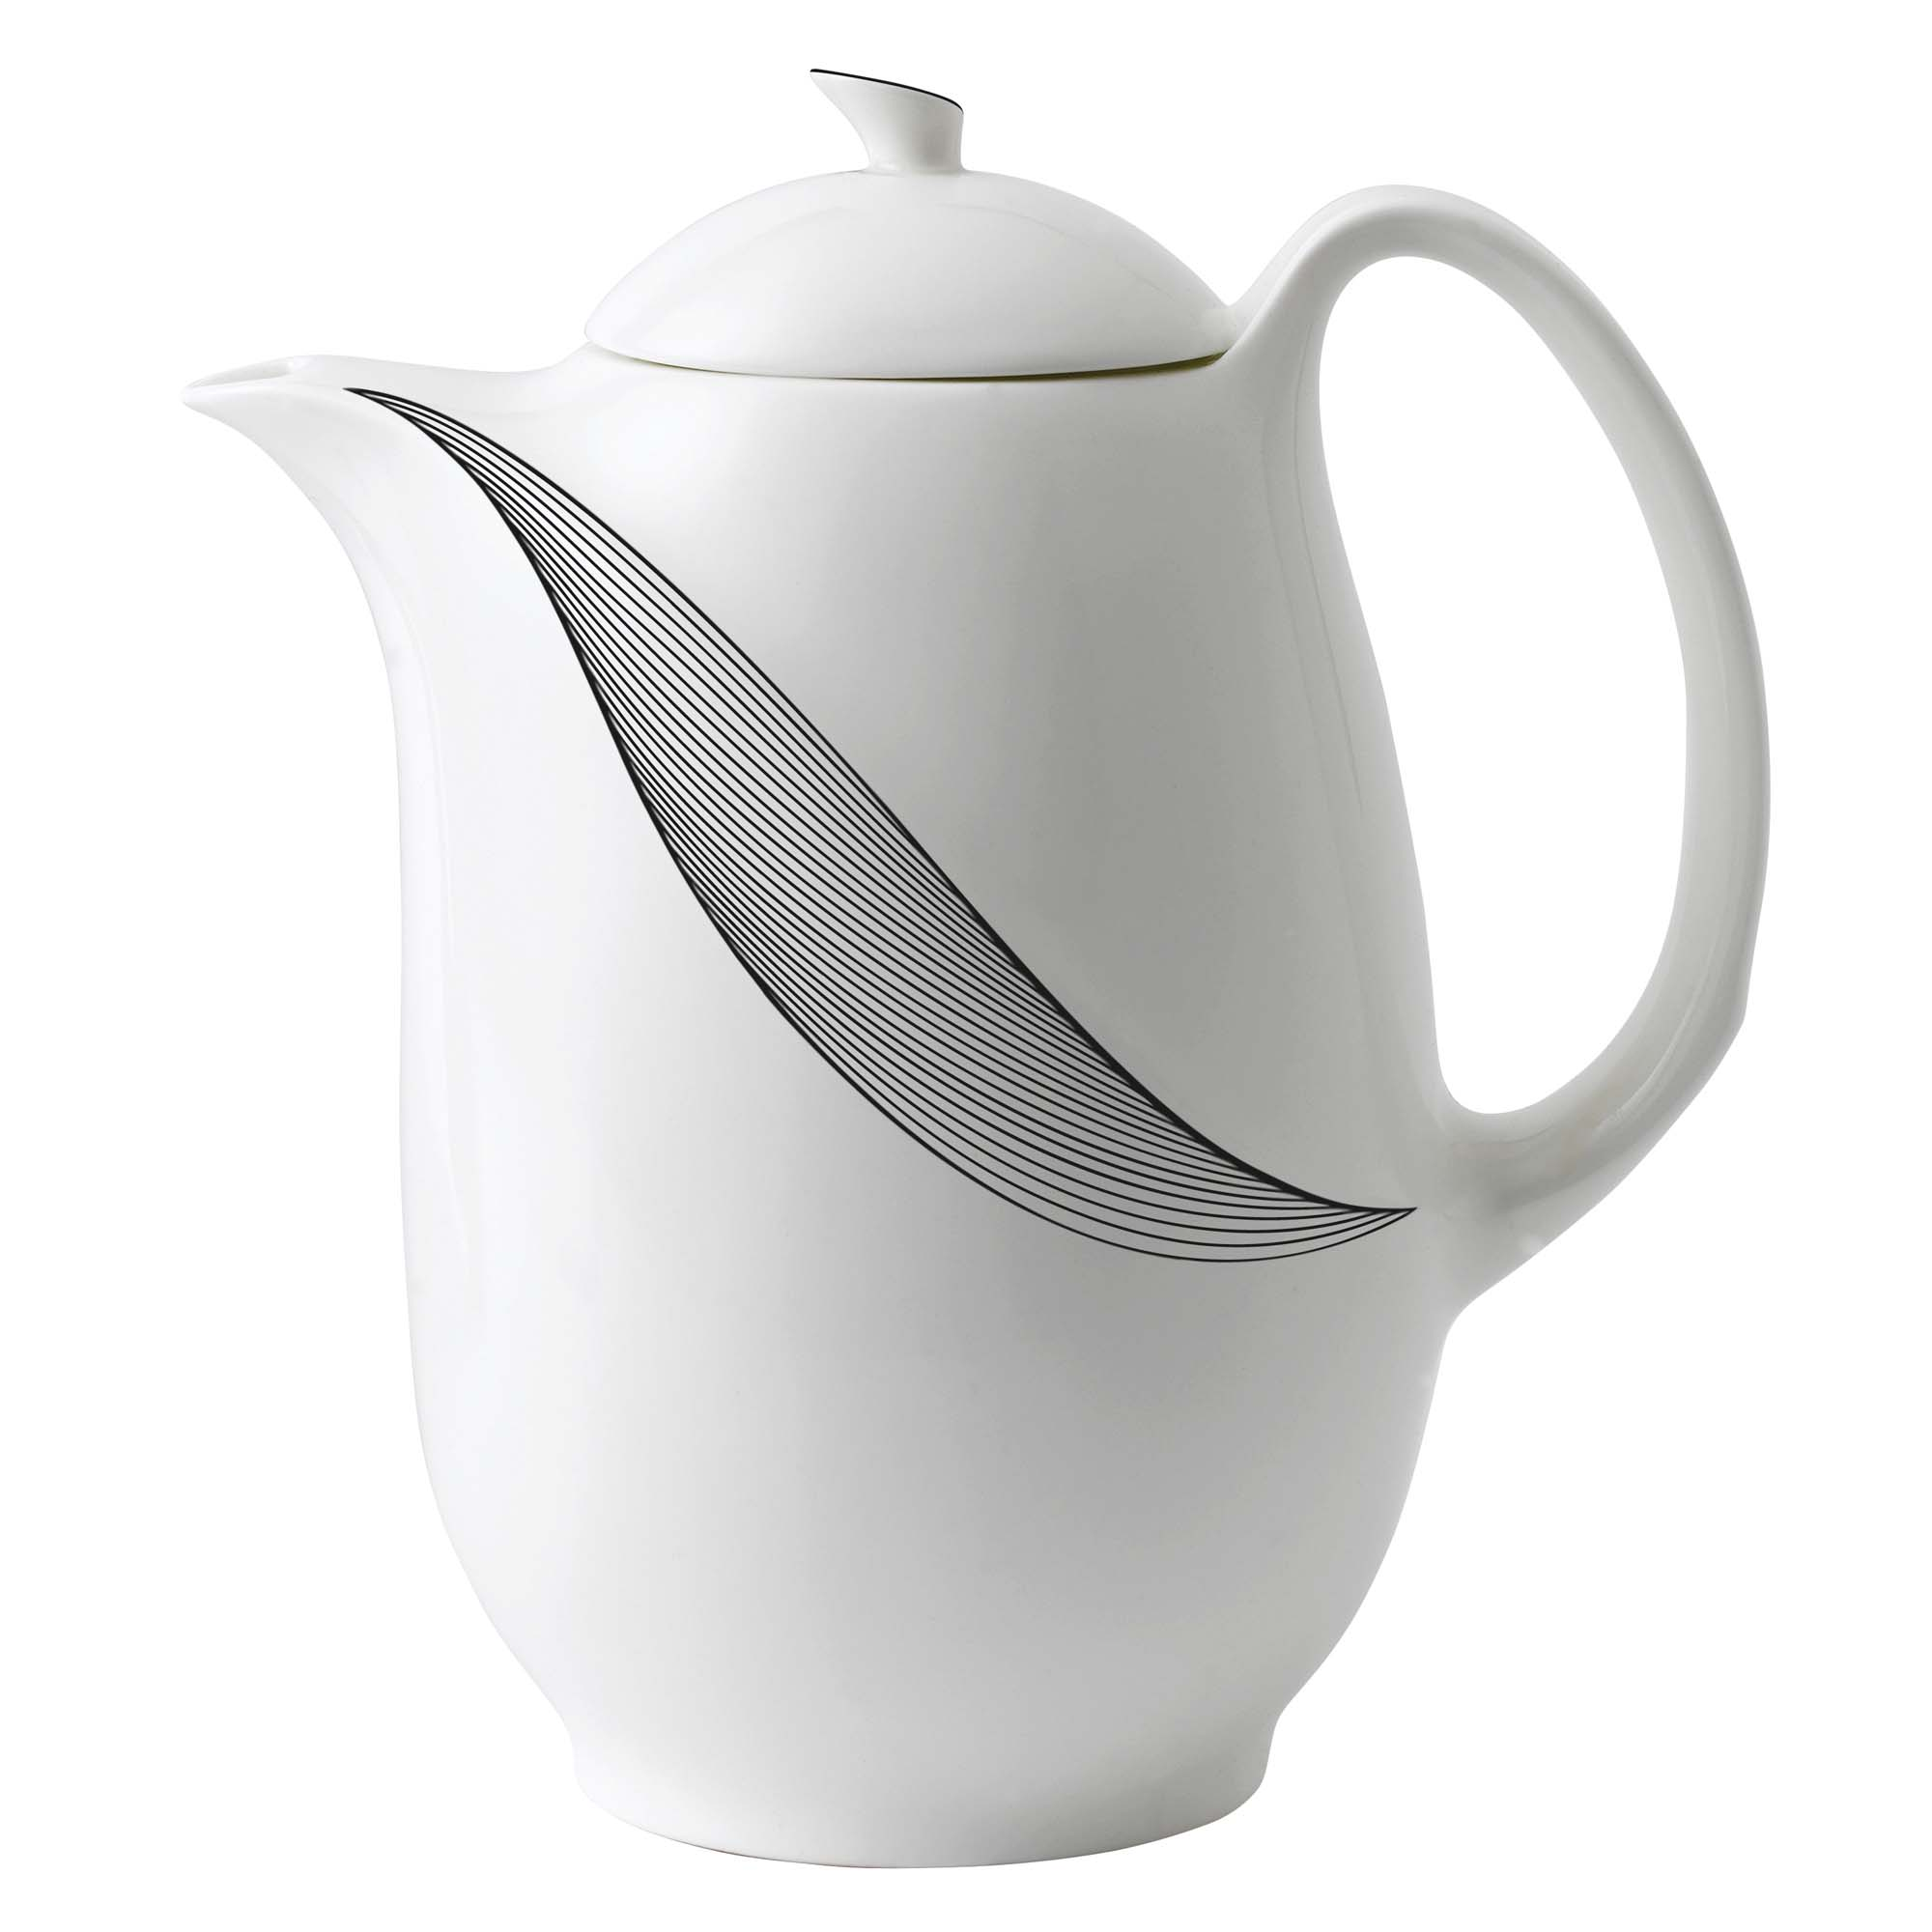 a photo of a white ceramic coffee pot with swirl pattern